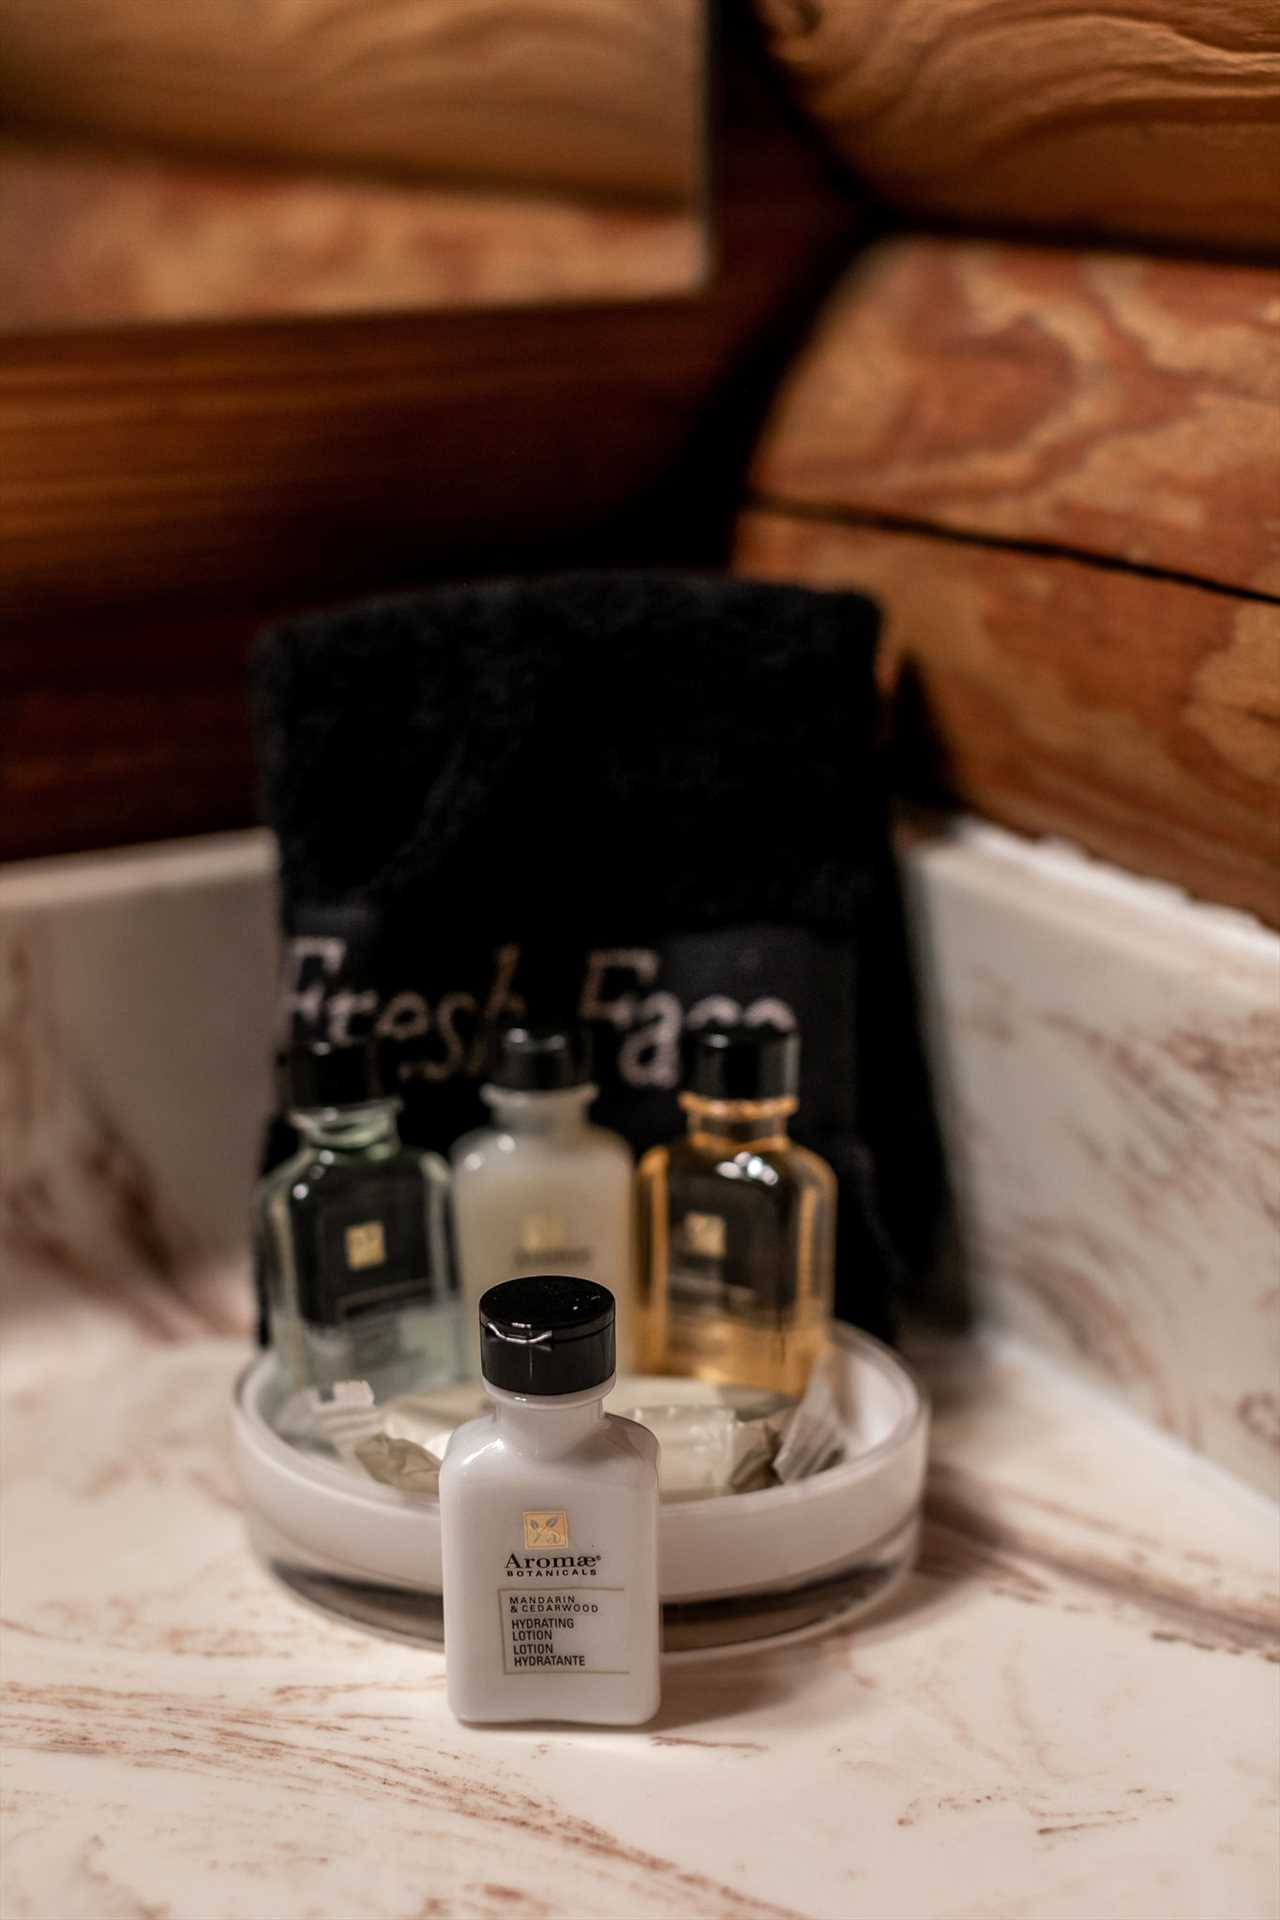 Enjoy complimentary soaps and shampoos.